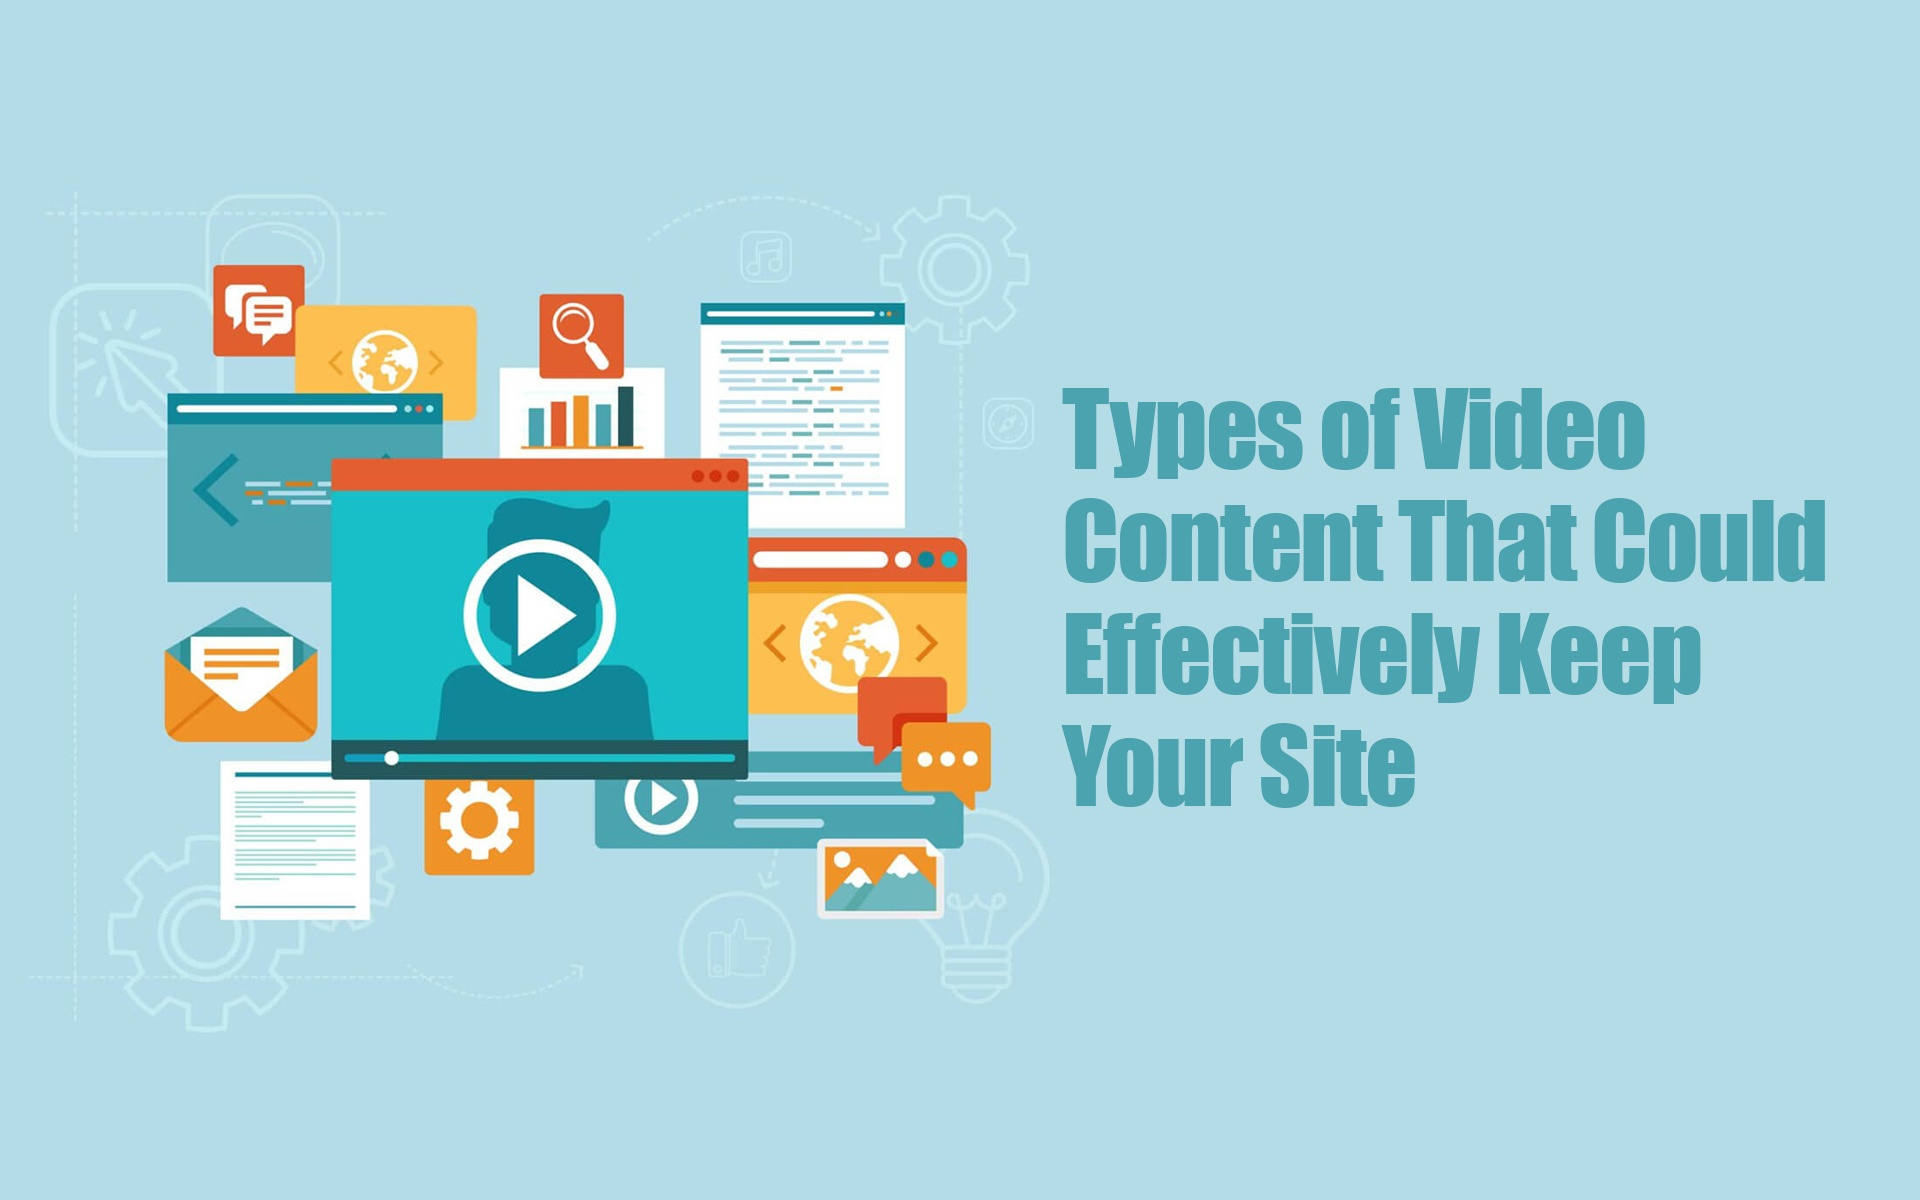 Types of Video Content That Could Effectively Keep Your Site